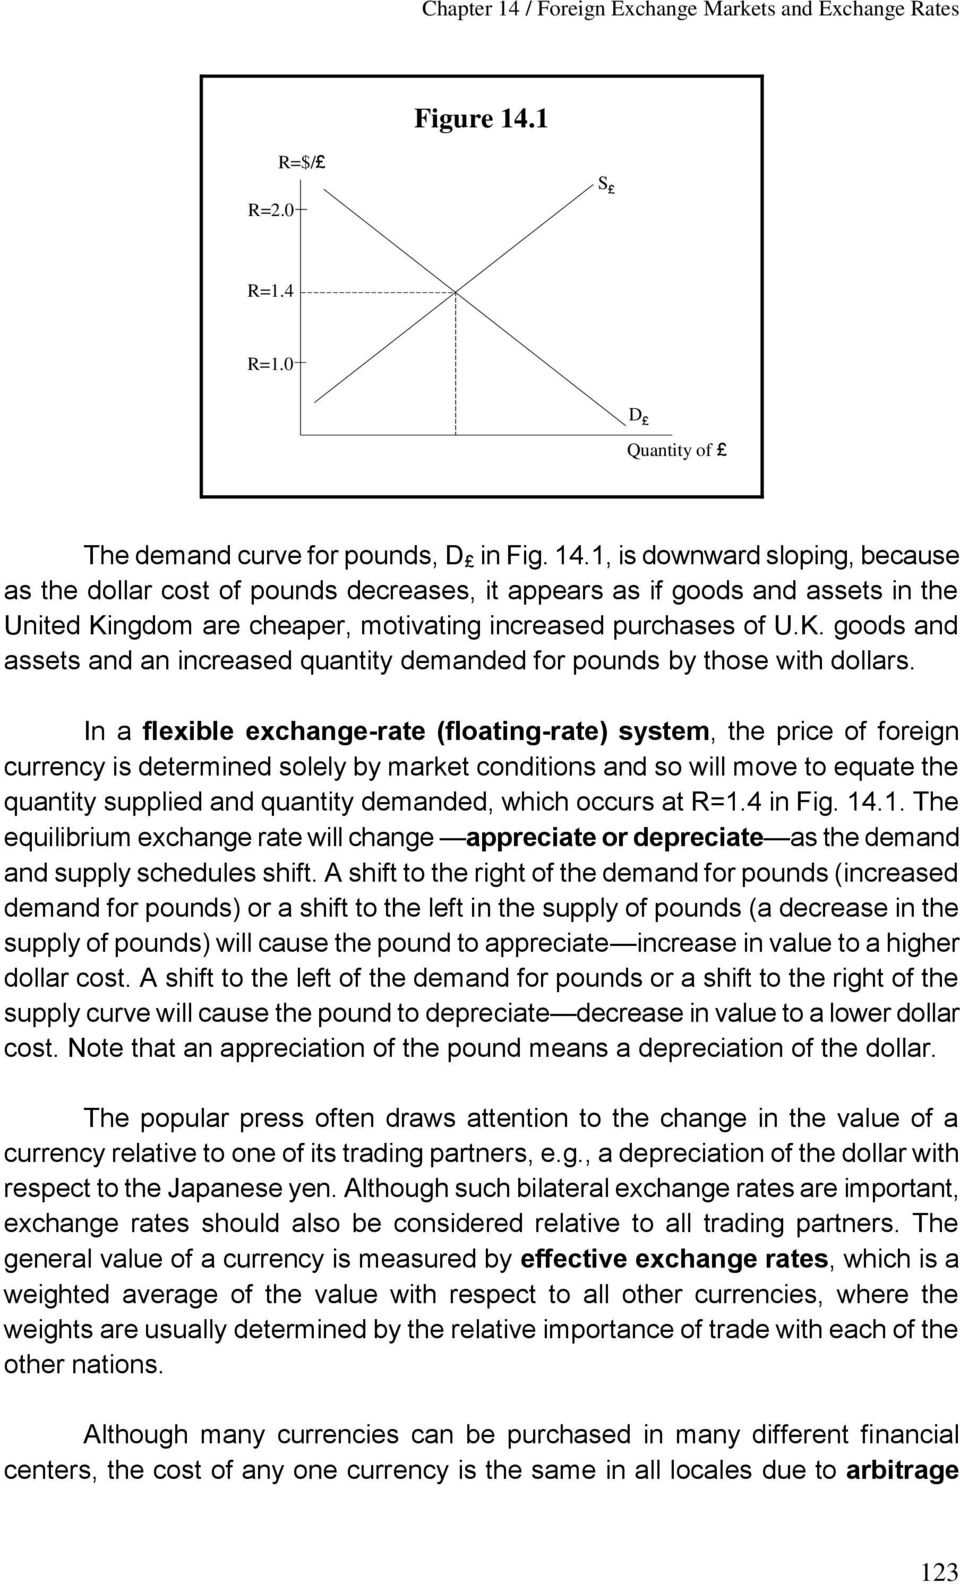 In a flexible exchange-rate (floating-rate) system, the price of foreign currency is determined solely by market conditions and so will move to equate the quantity supplied and quantity demanded,